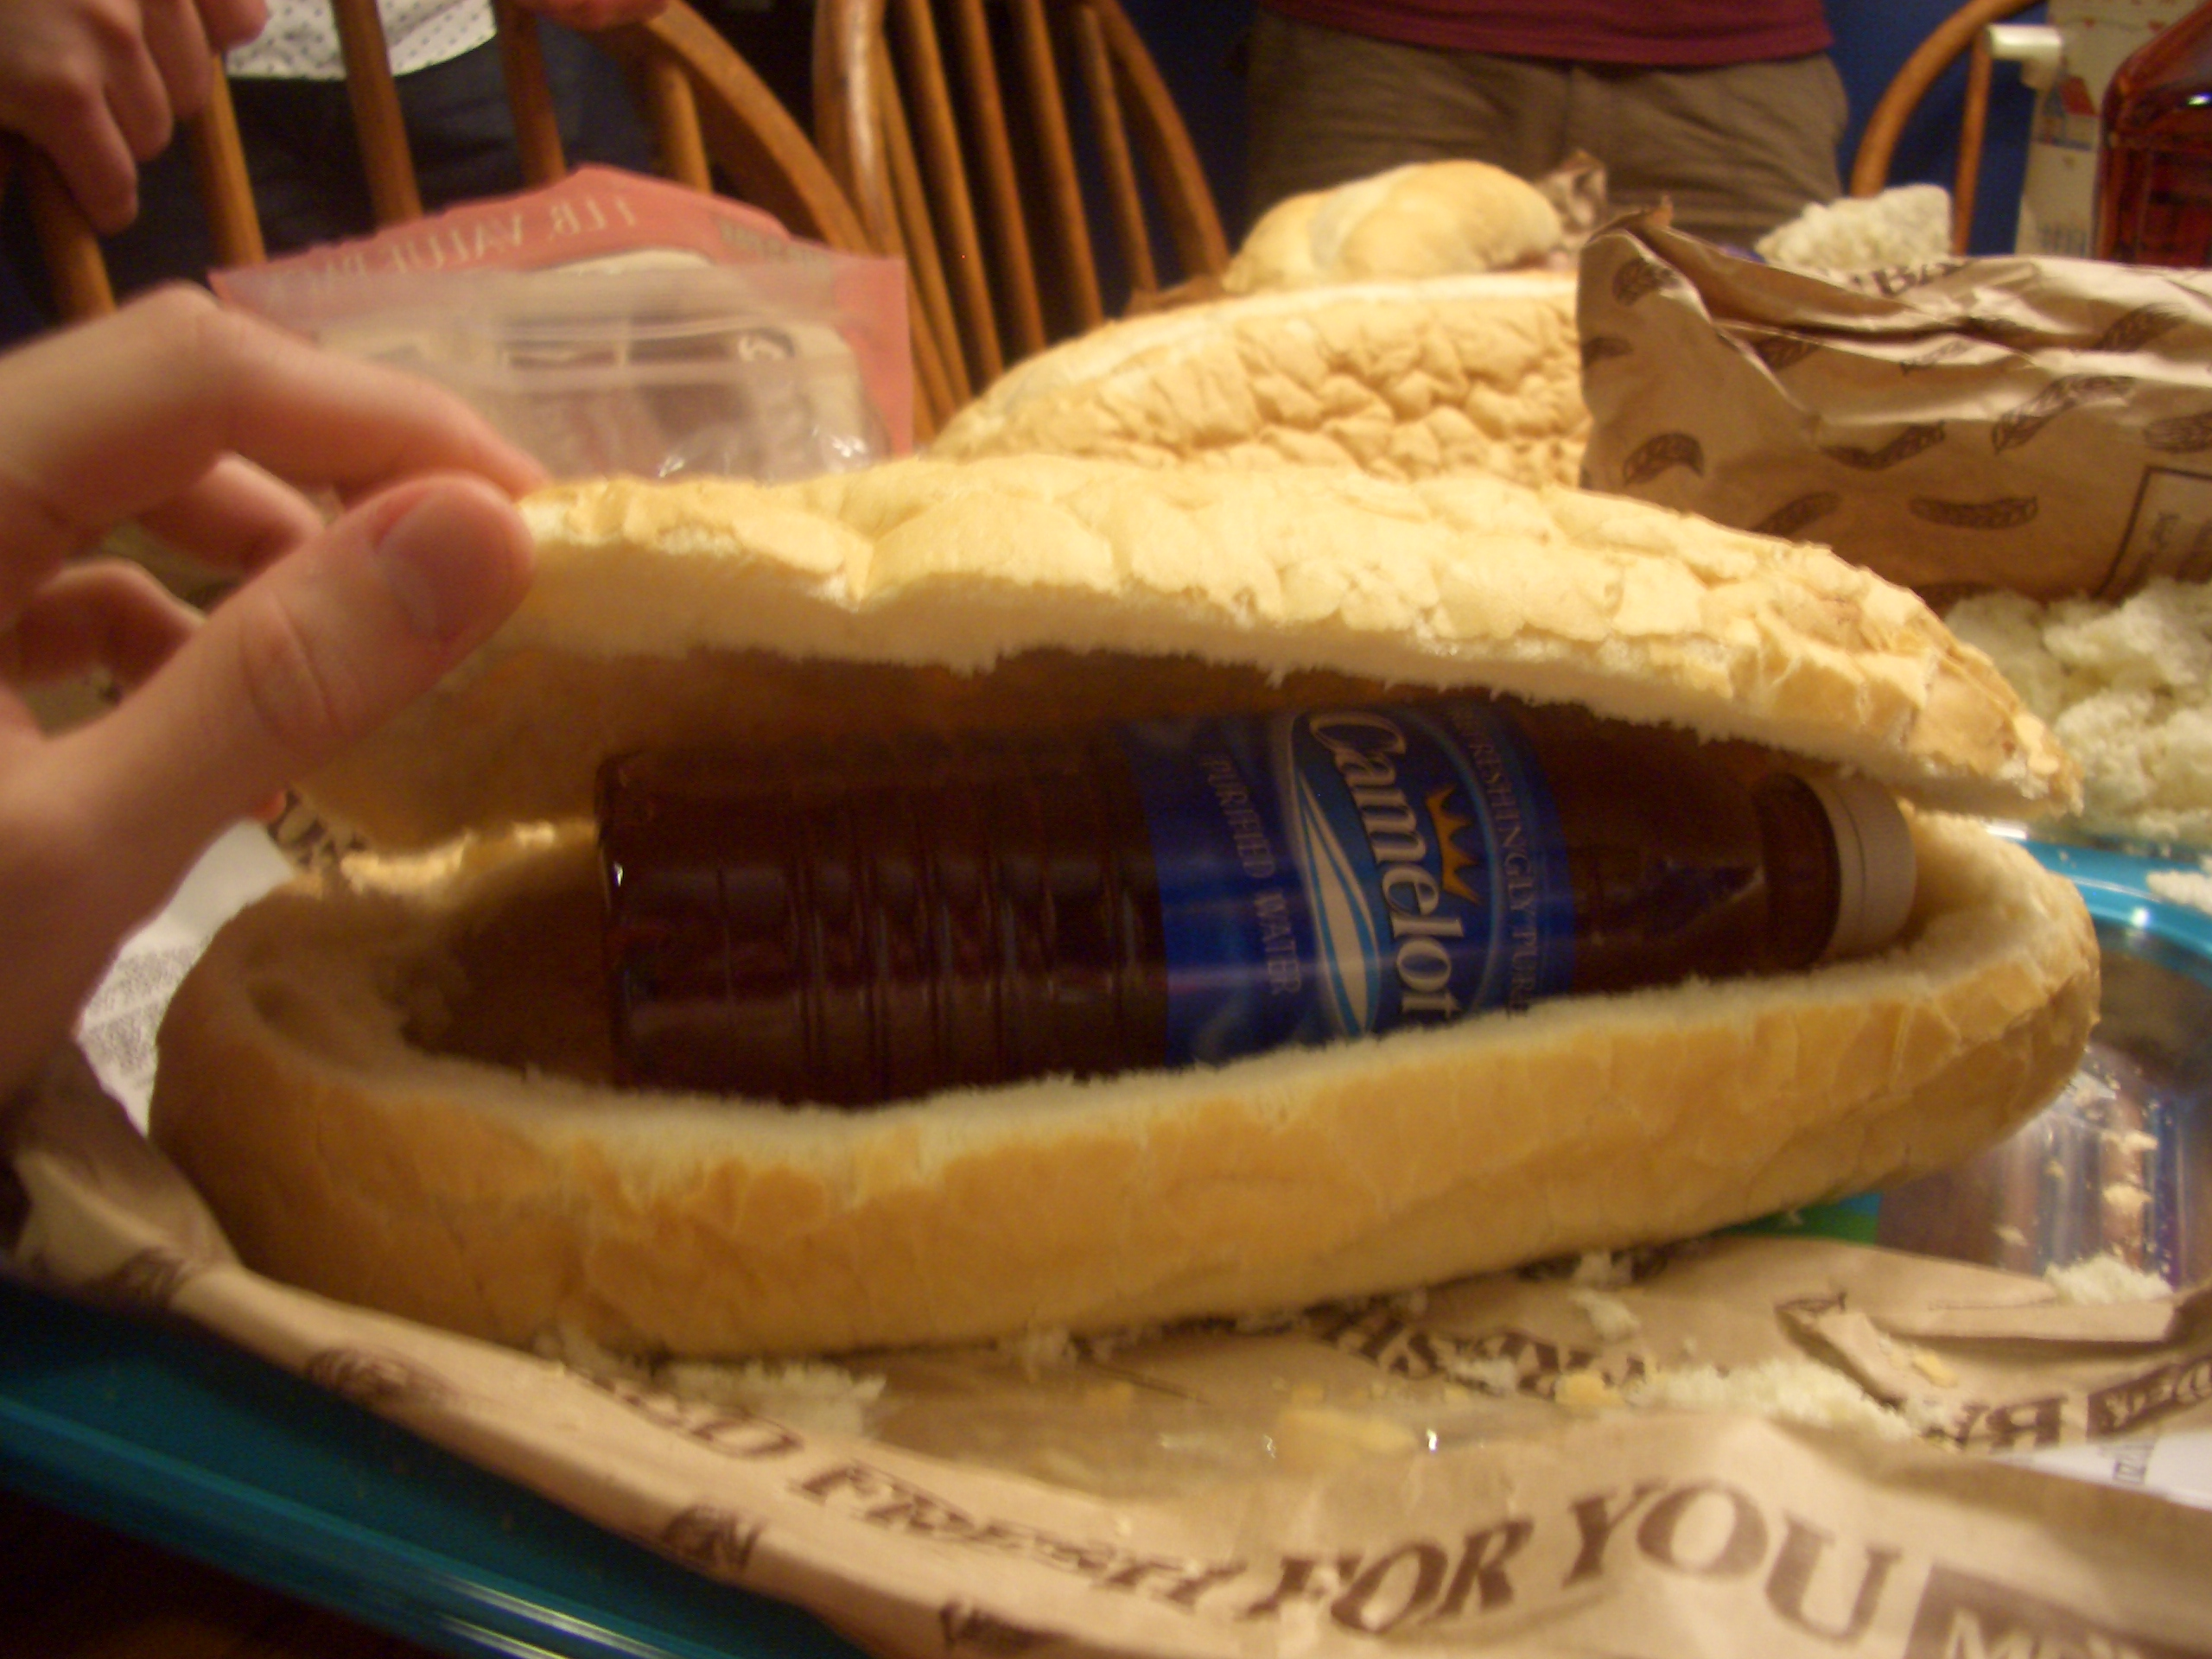 Bottle in Bread